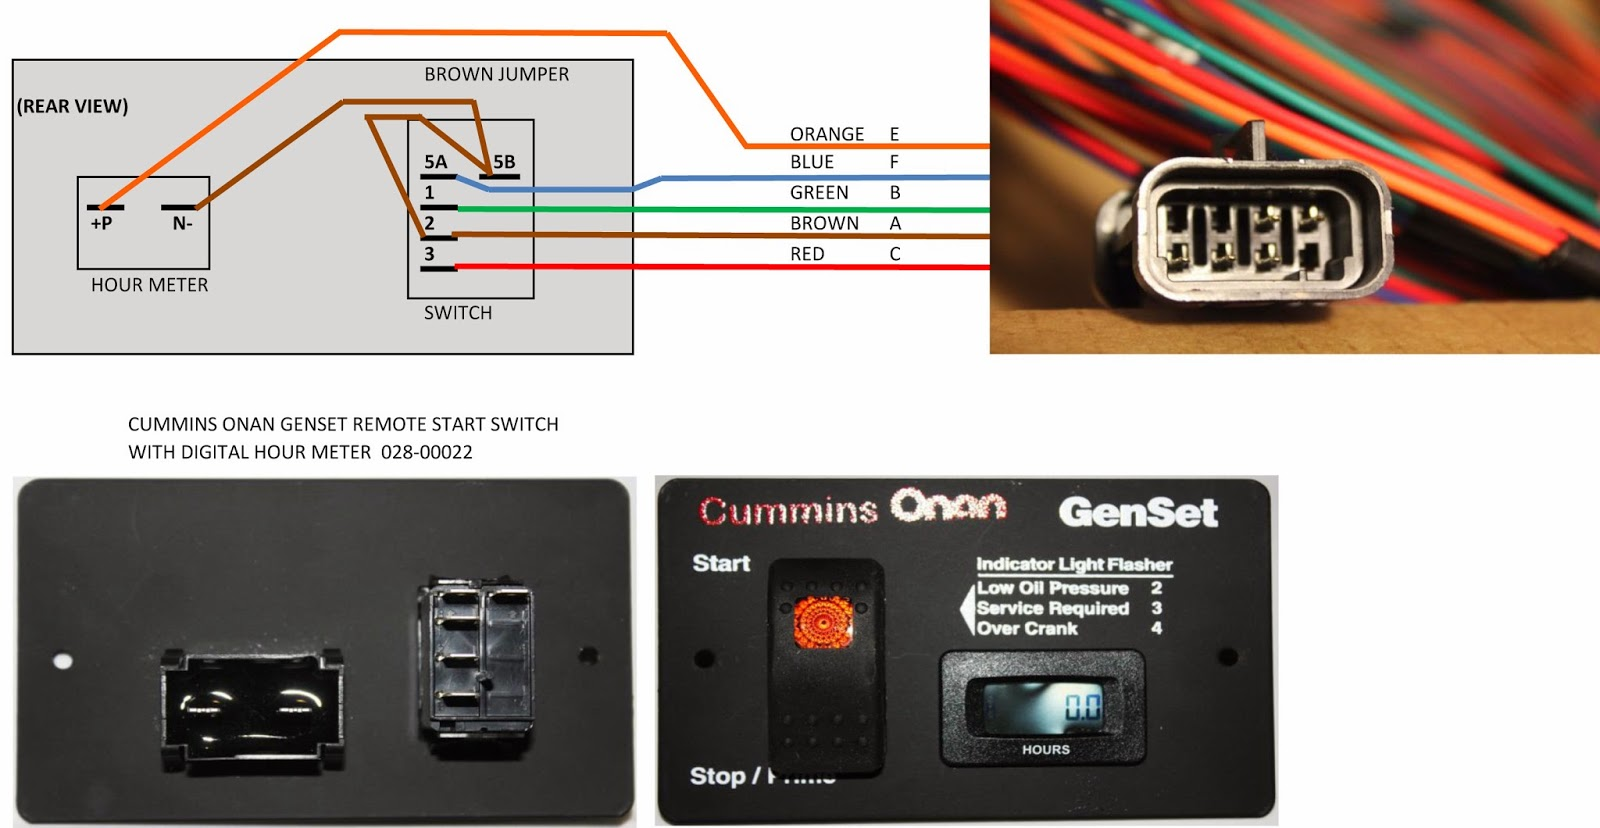 TOPONAUTIC Outdoor NewsEventsRecipes: ONAN REMOTE SWITCH